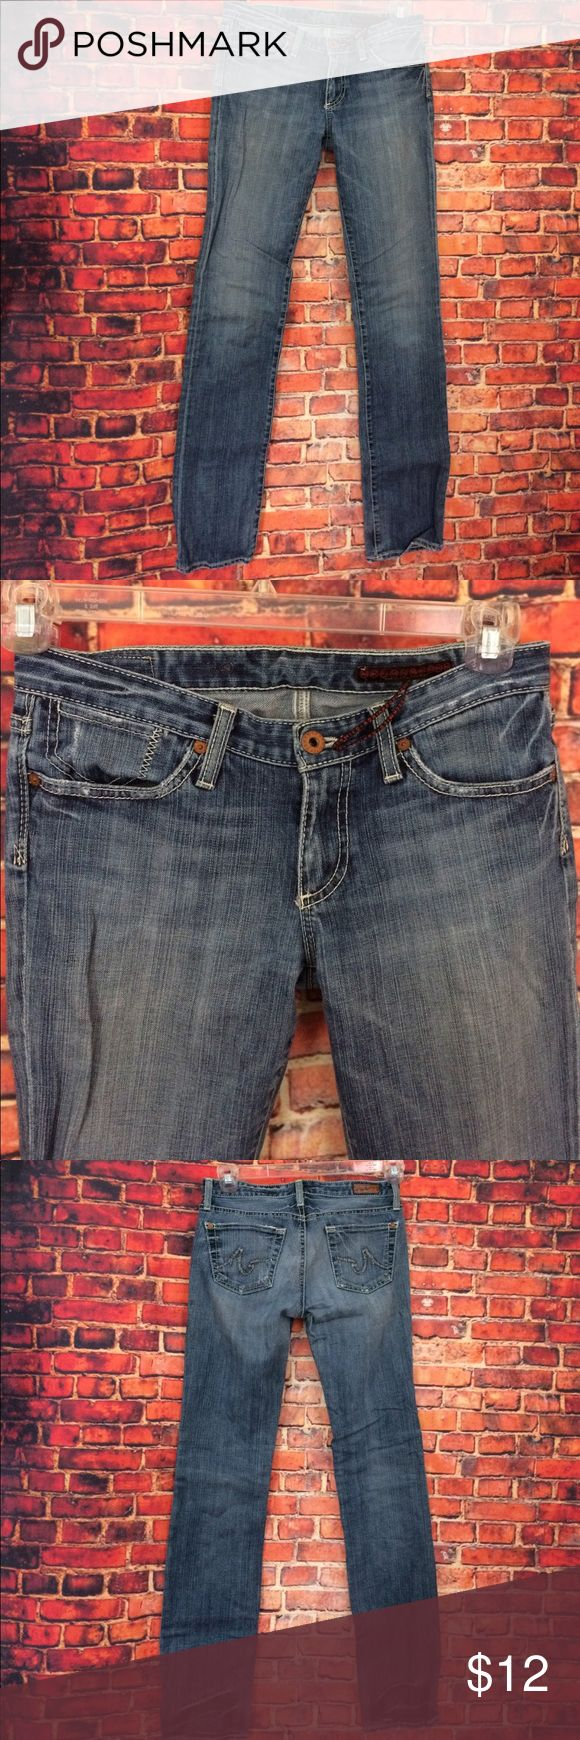 AG Adriano Goldschmied Light Wash Jeans 👖 28Rx 33 AG Adriano Goldschmied Light Wash Jeans 👖 28Rx 33. Worn many times with wear on back tag and leg bottoms. AG Adriano Goldschmied Jeans Straight Leg